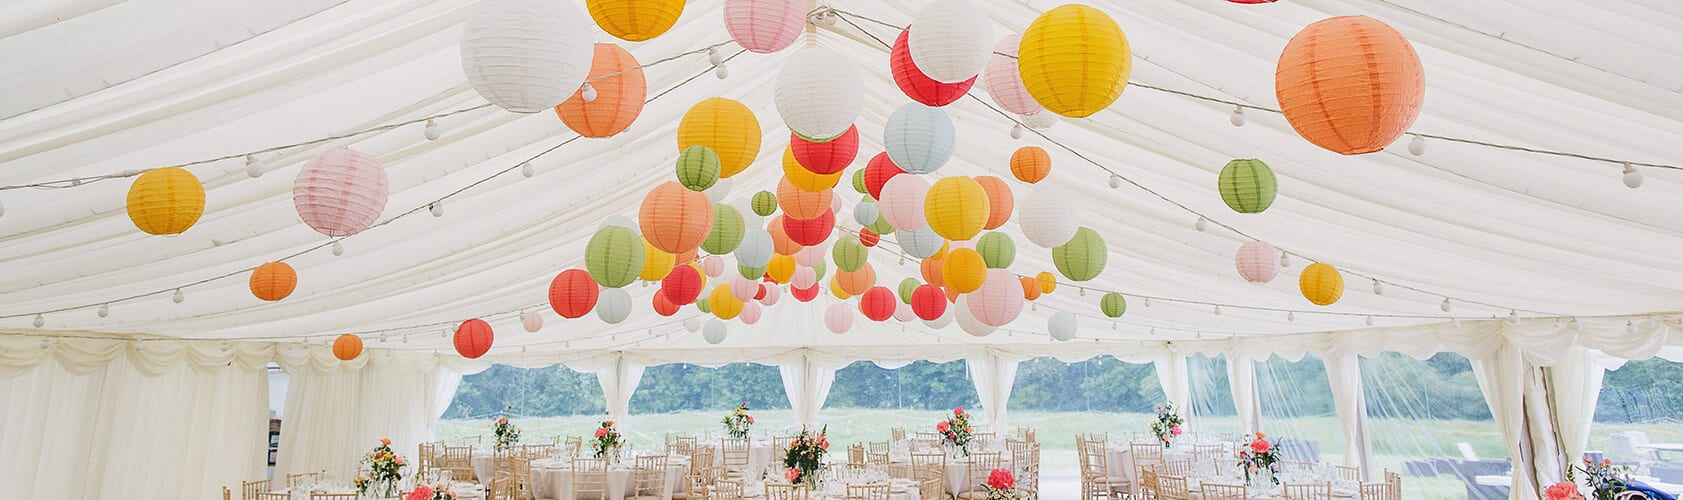 Helen-Sheppy-for-Hatch-Marquees_Helen-Lisk-Photography_005-2-OPT